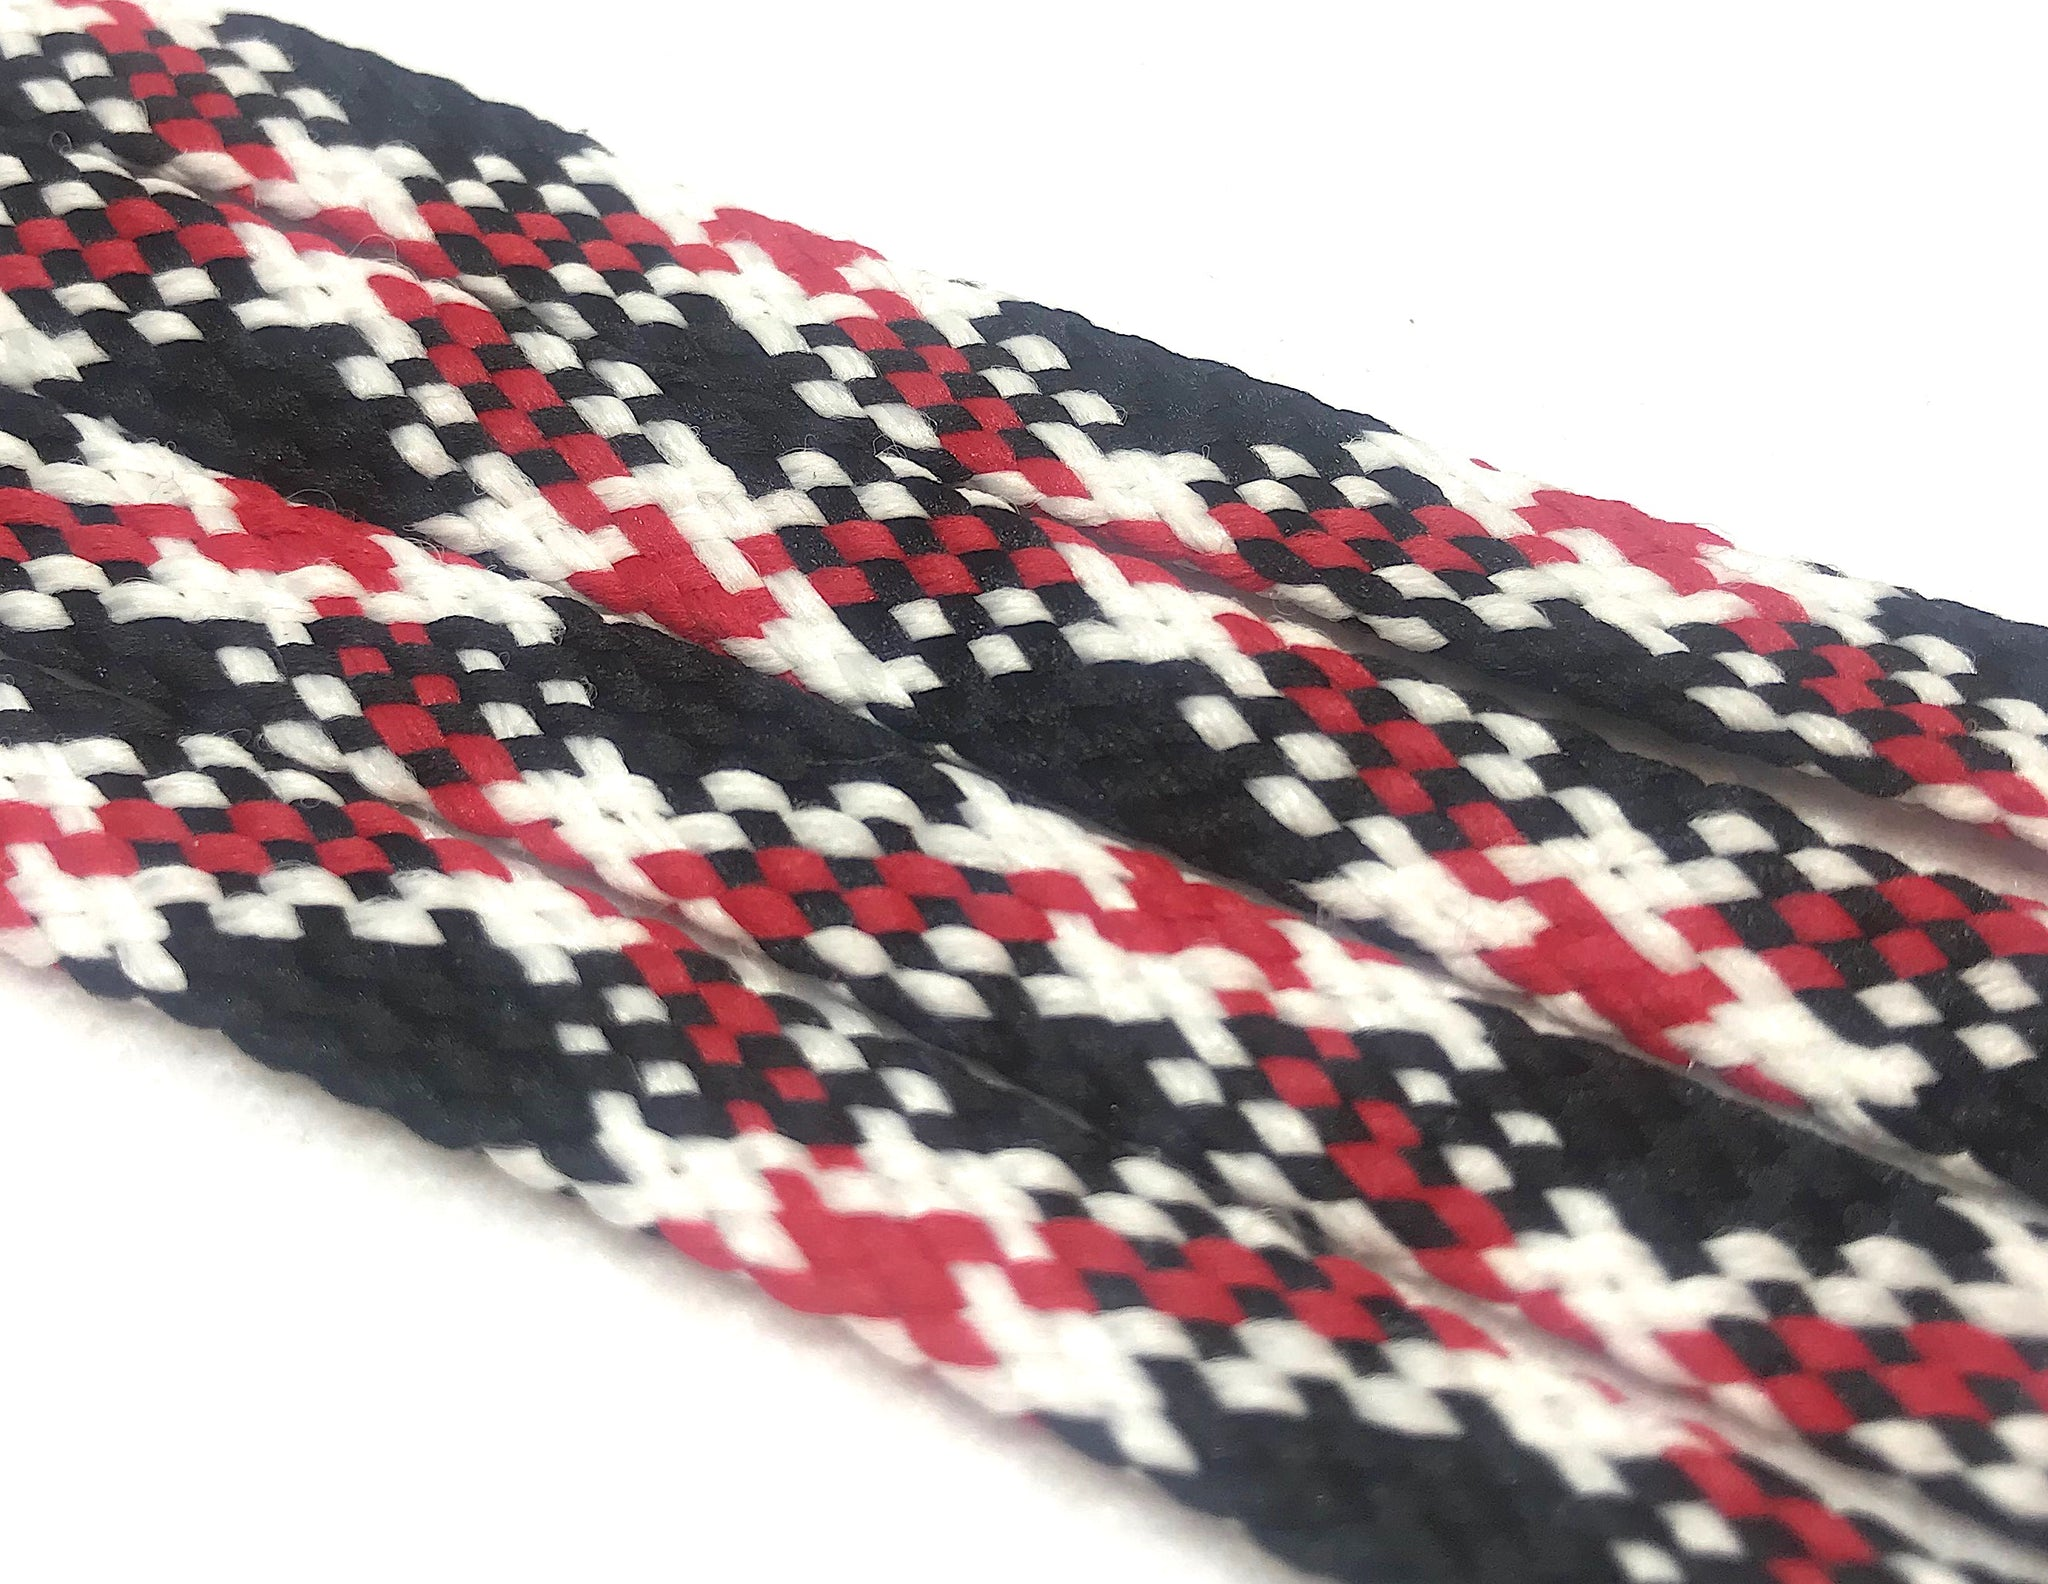 Red, Black and White Plaid Flat Shoelaces